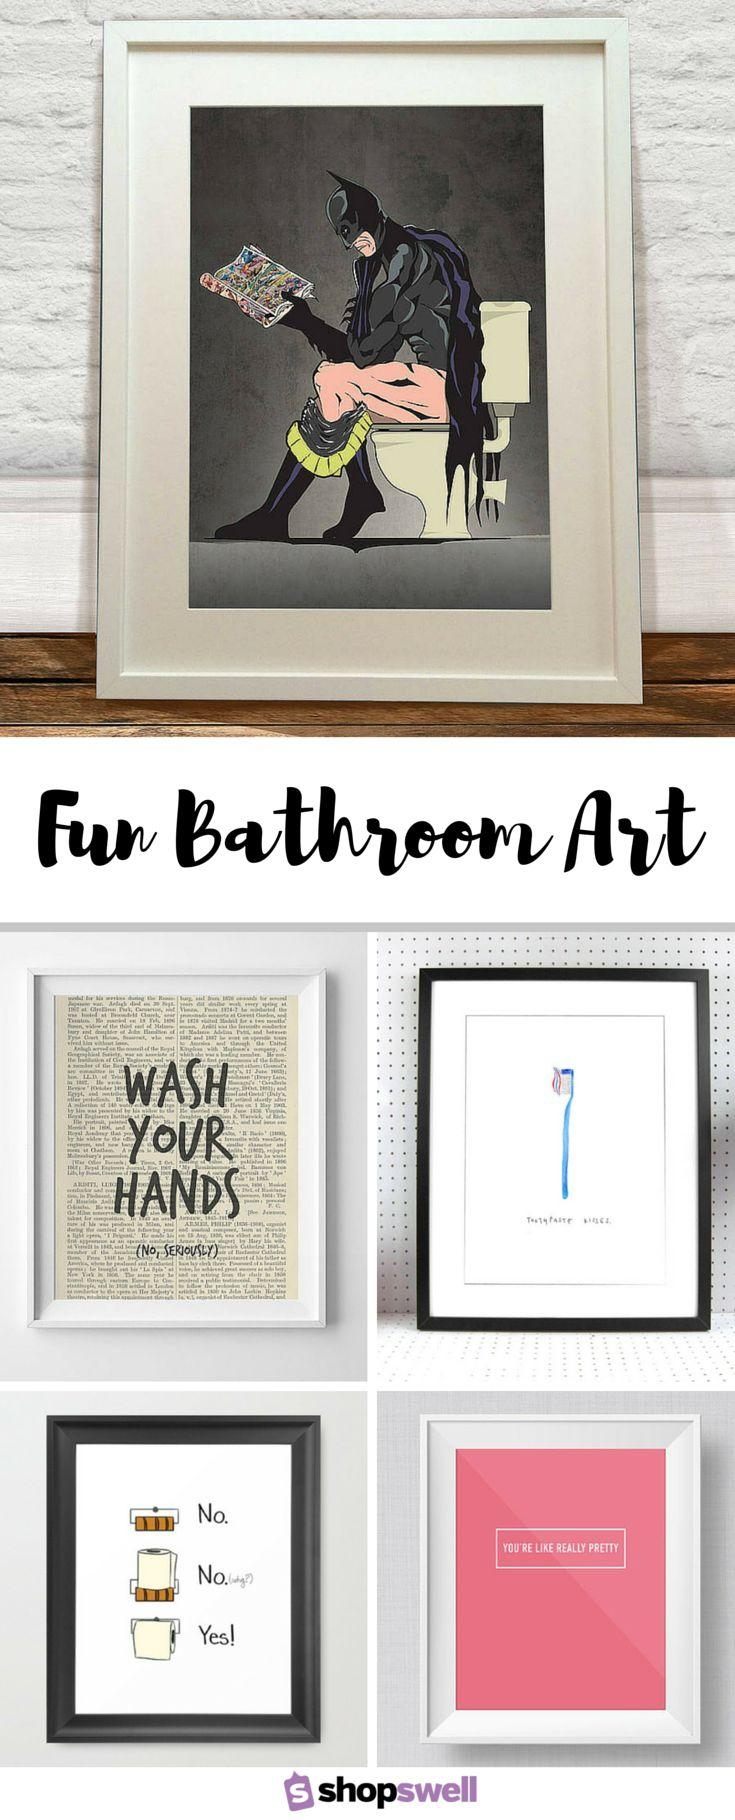 Best 25+ Bathroom Wall Art Ideas On Pinterest | Wall Decor For With Regard To Contemporary Bathroom Wall Art (Image 9 of 20)